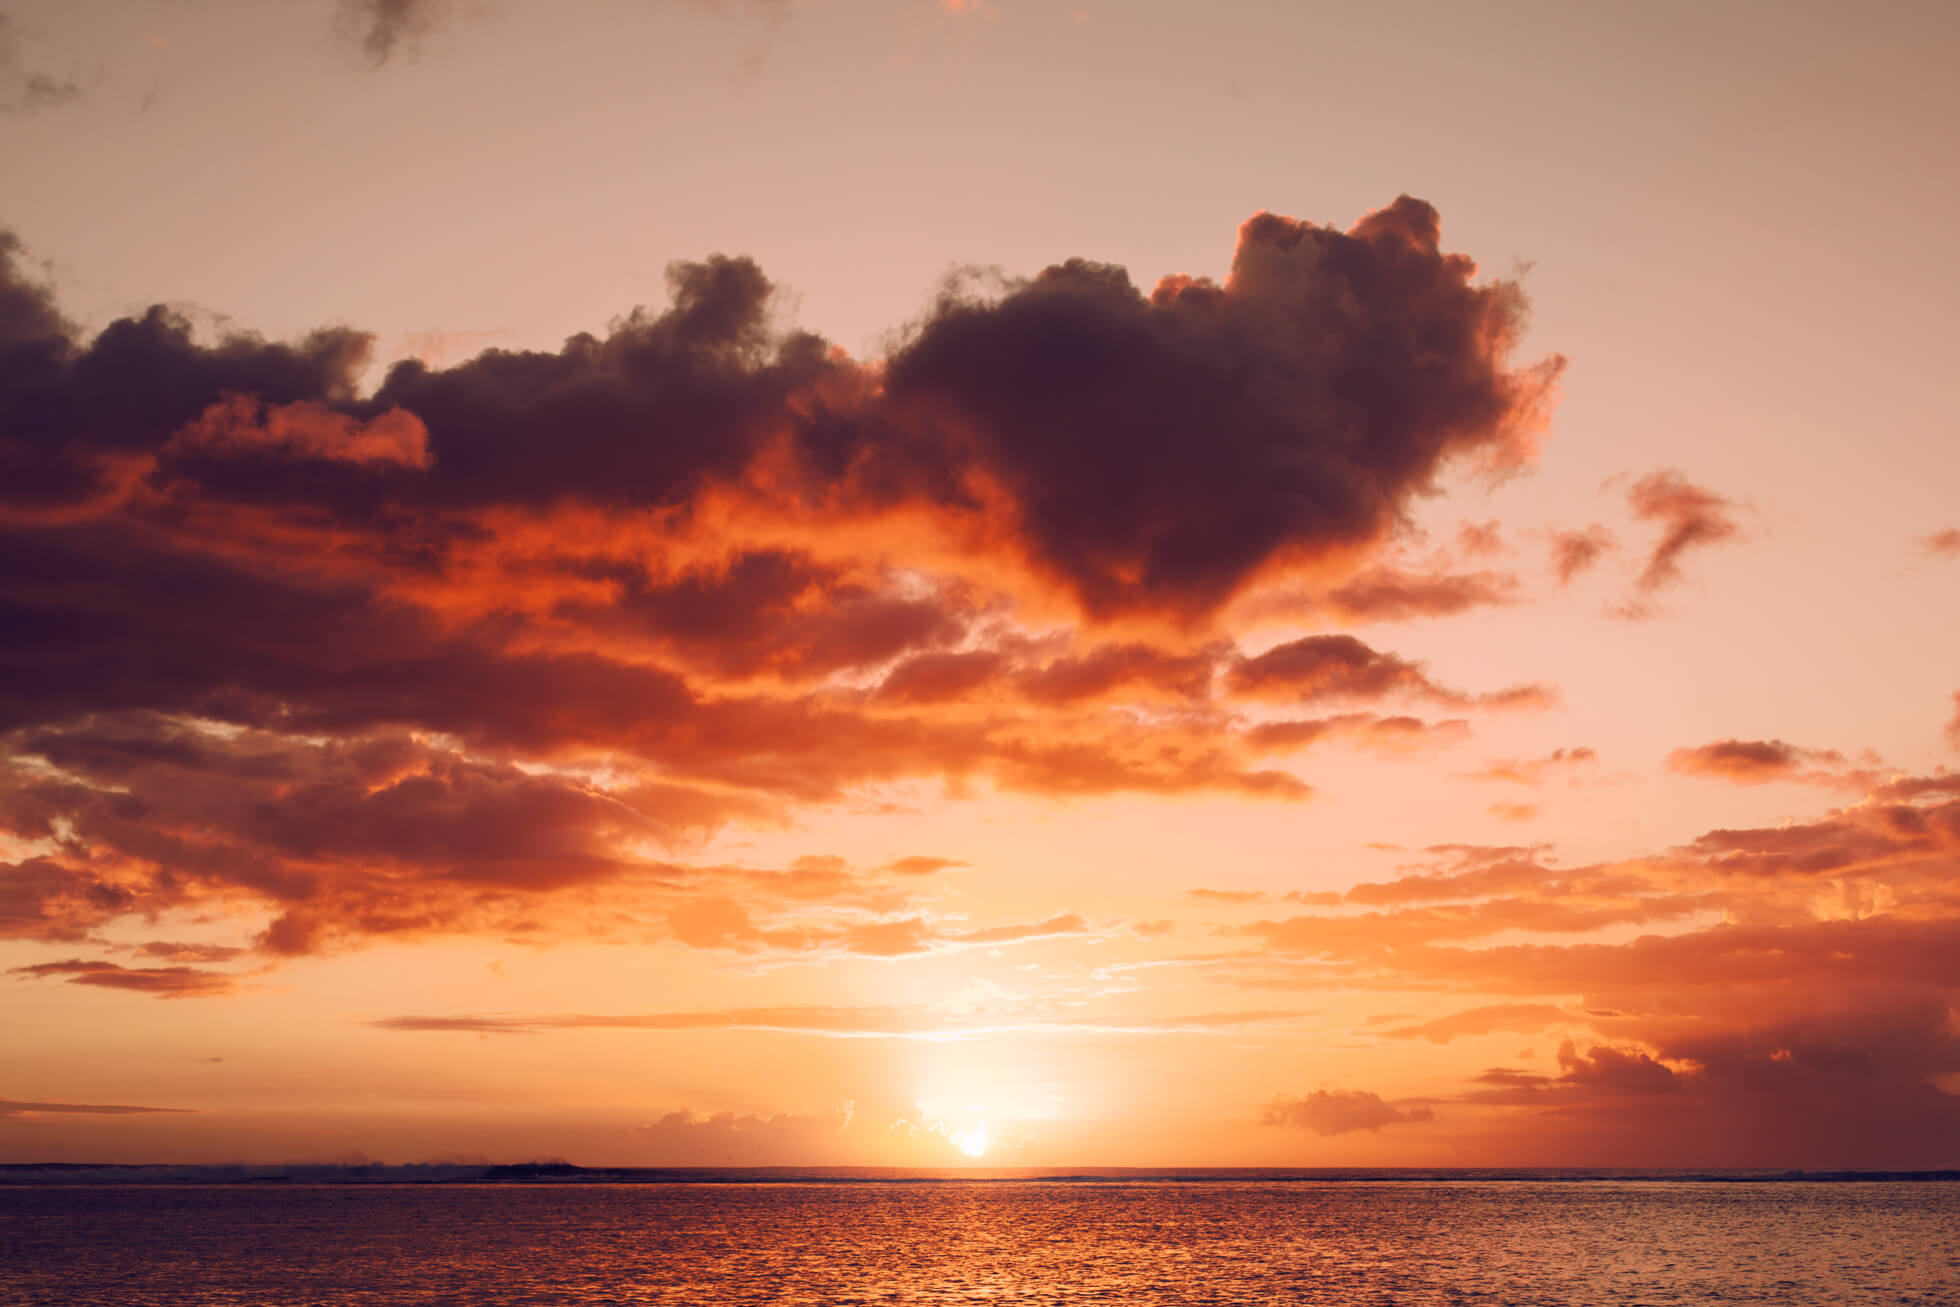 4_MG_8813-Edit - Mauritius sunset by Fabian Wester_